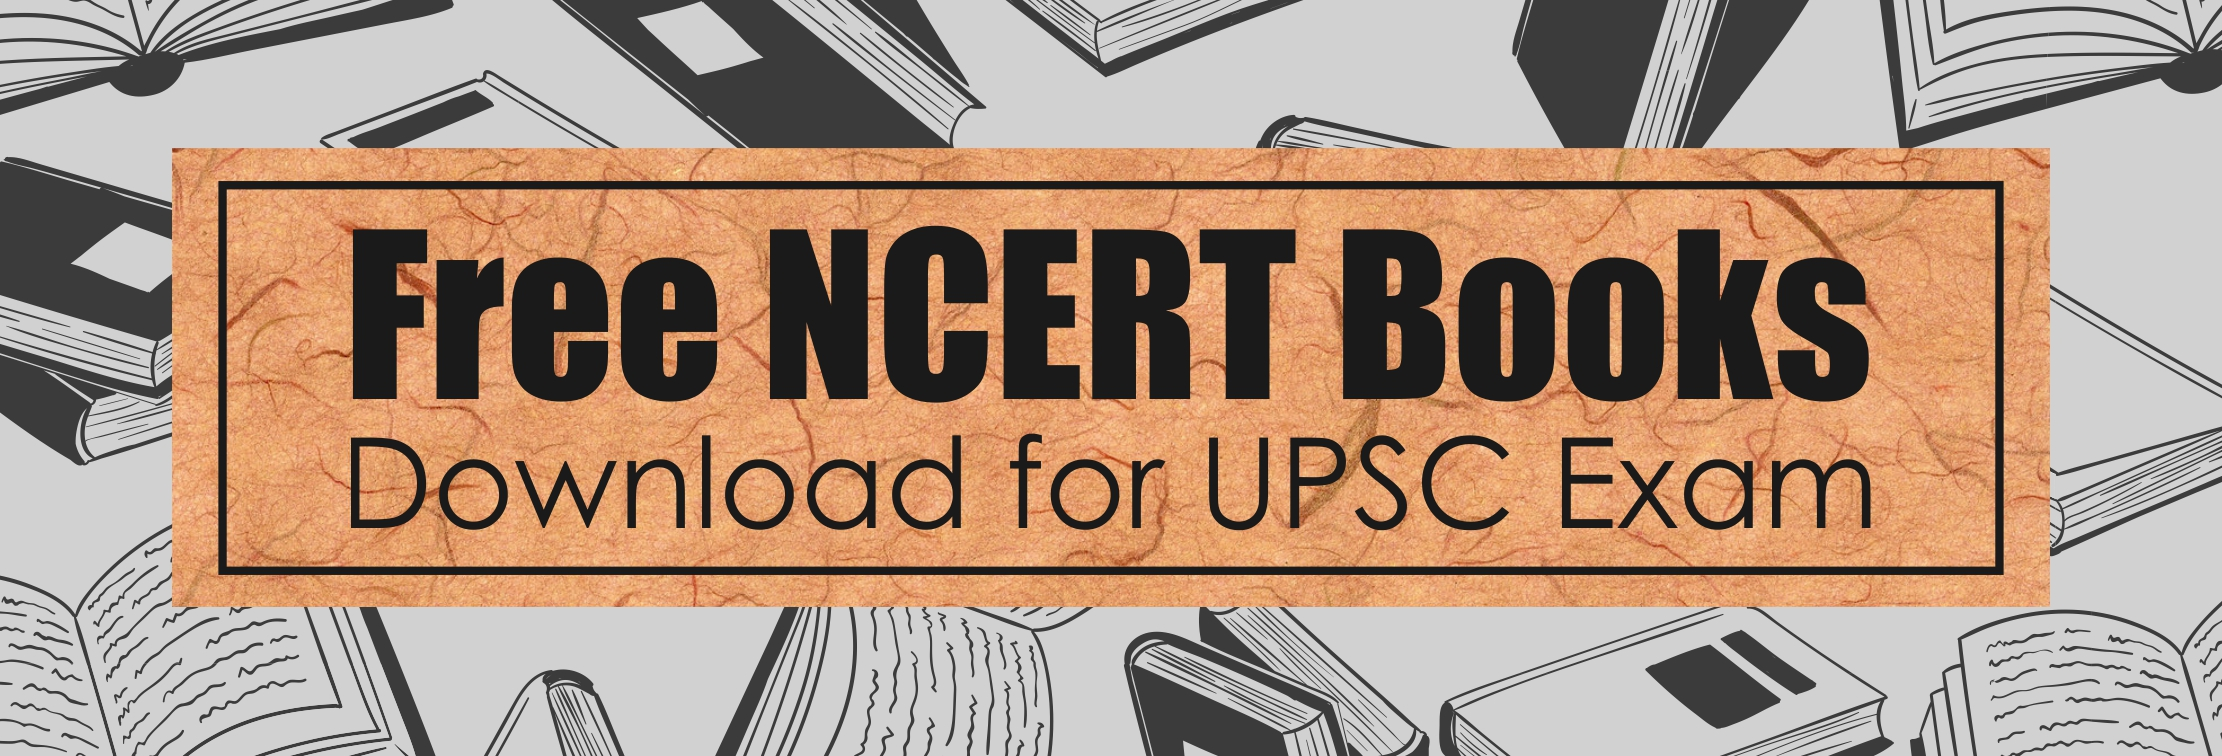 essay books for ias exam what is upsc and how to prepare for upsc examouredu blog exam pompejanska info books enter